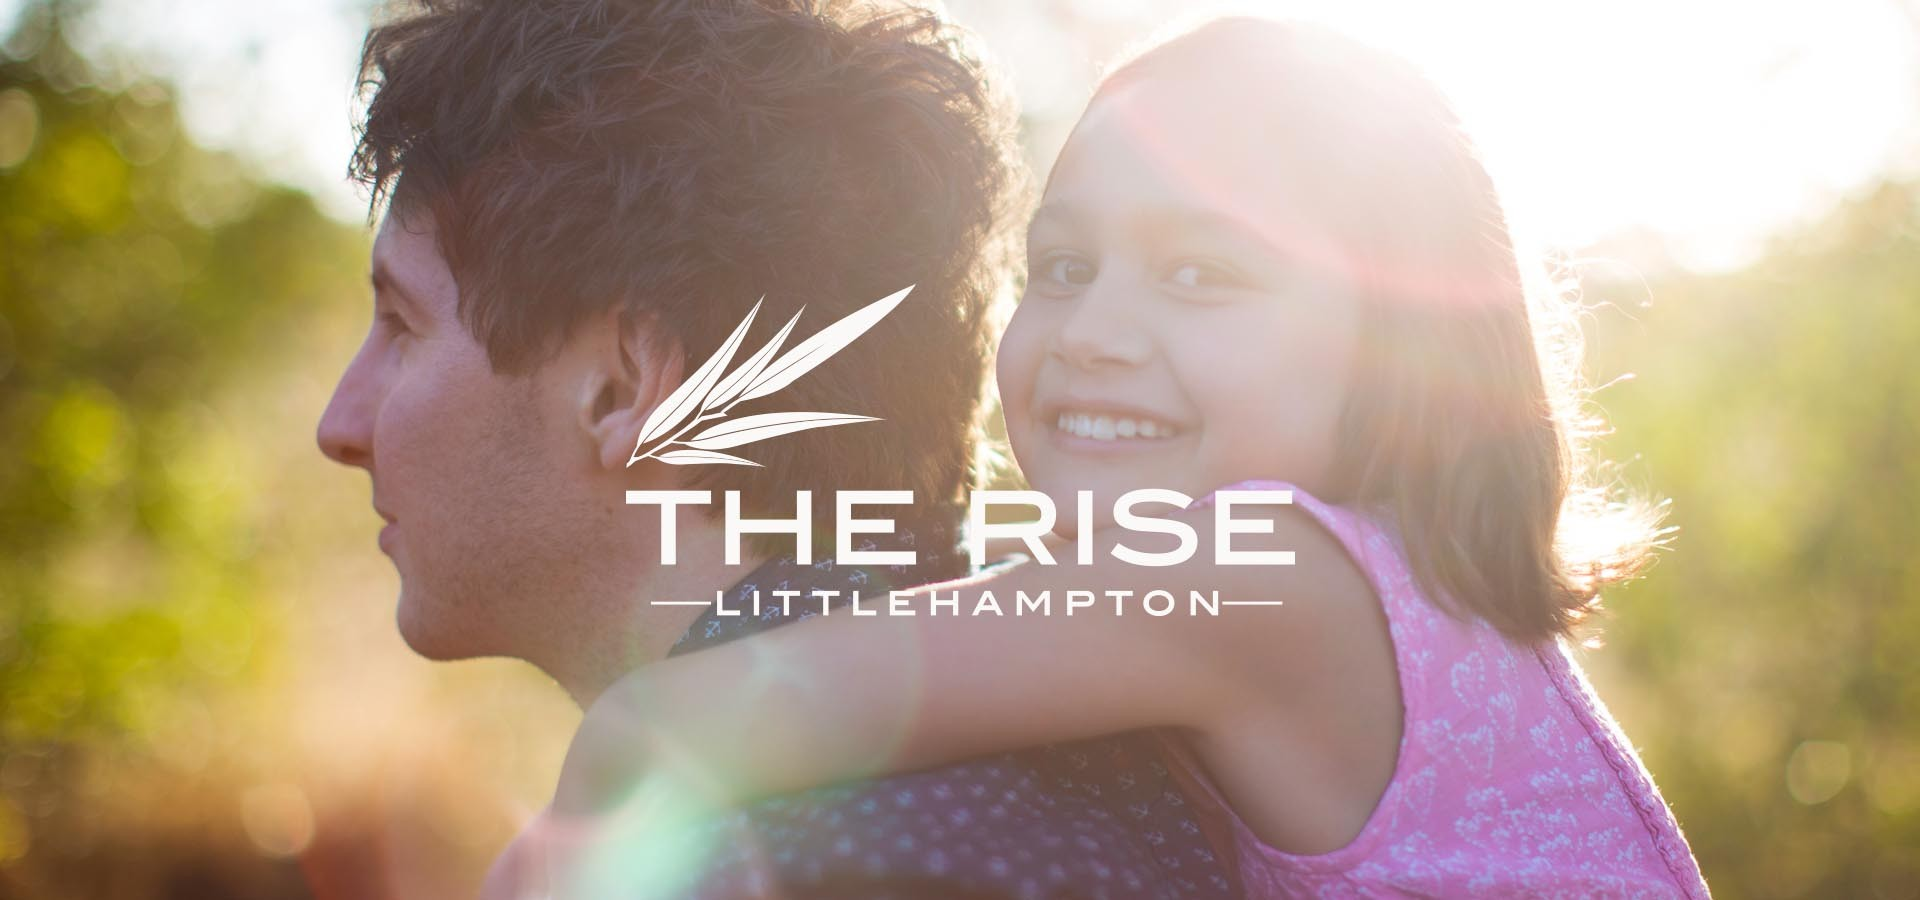 the rise littlehampton girl and guy slider with logo